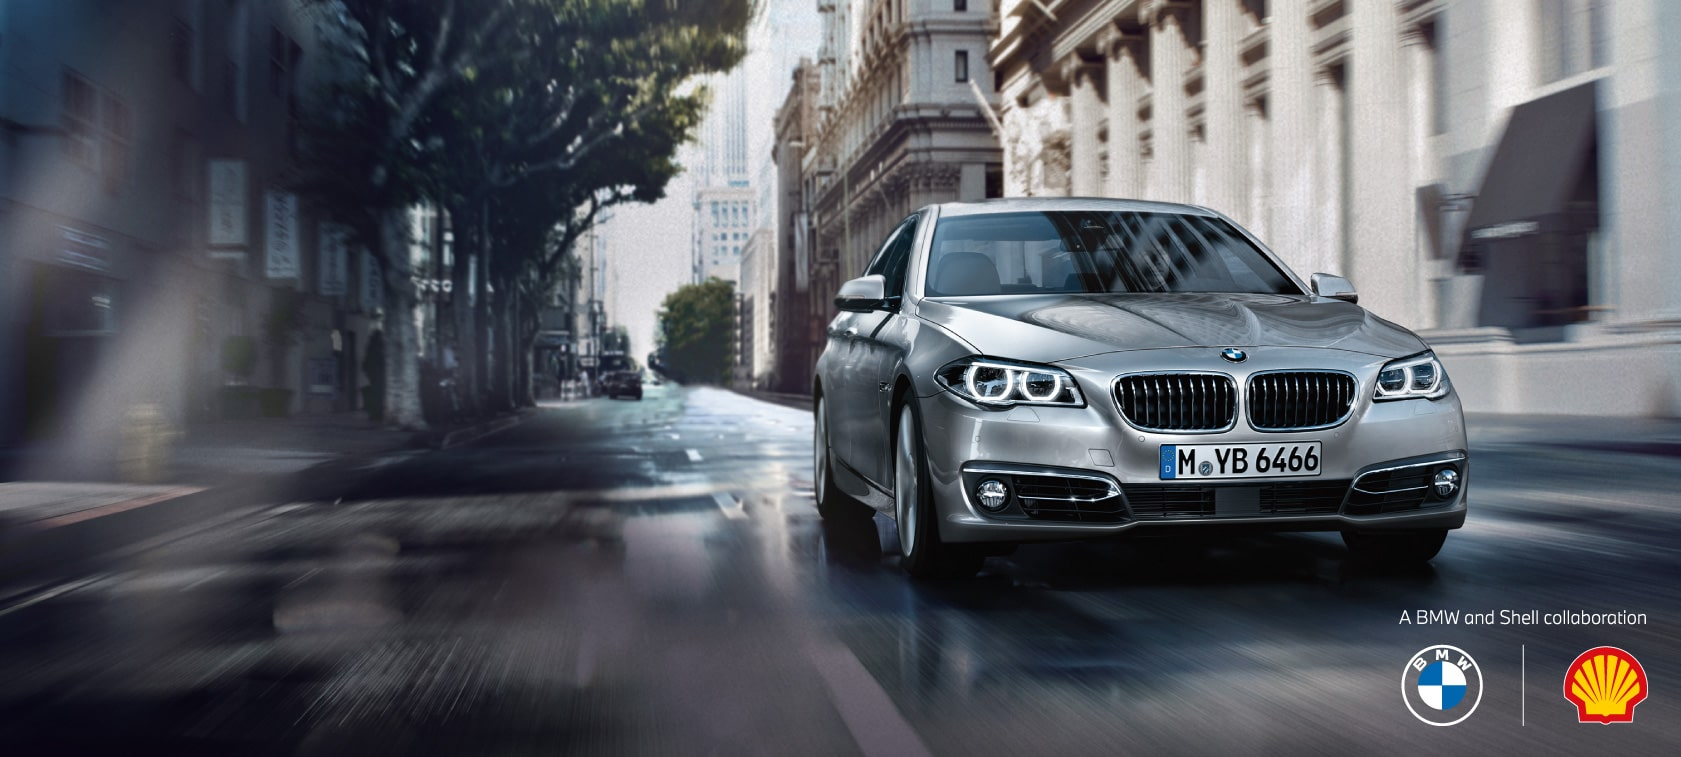 BMW Elevate Joy to Greater Heights